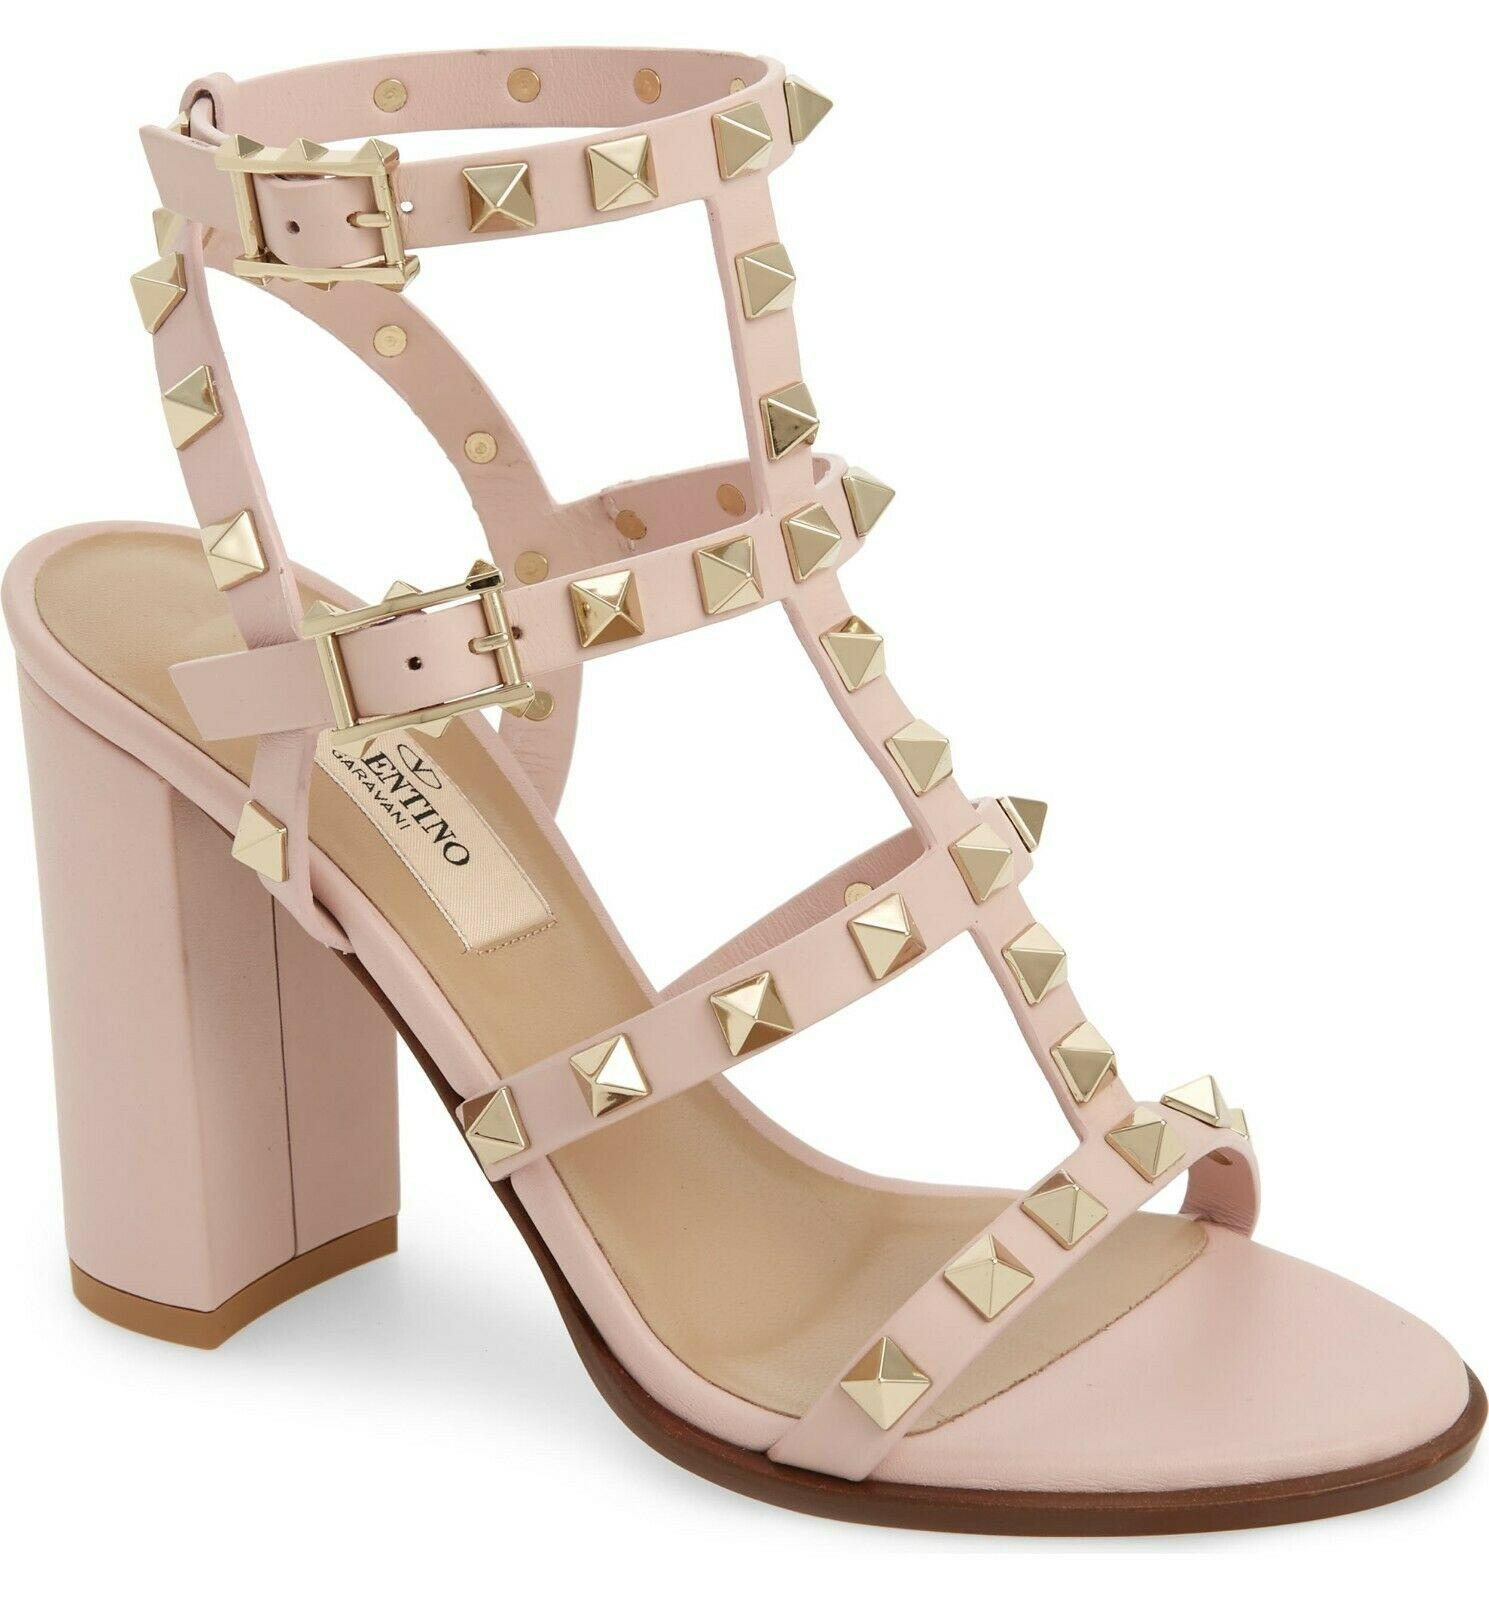 Valentino Rockstud T-Strap Rose Leather Cage Sandals Slingback Pumps Shoes 40